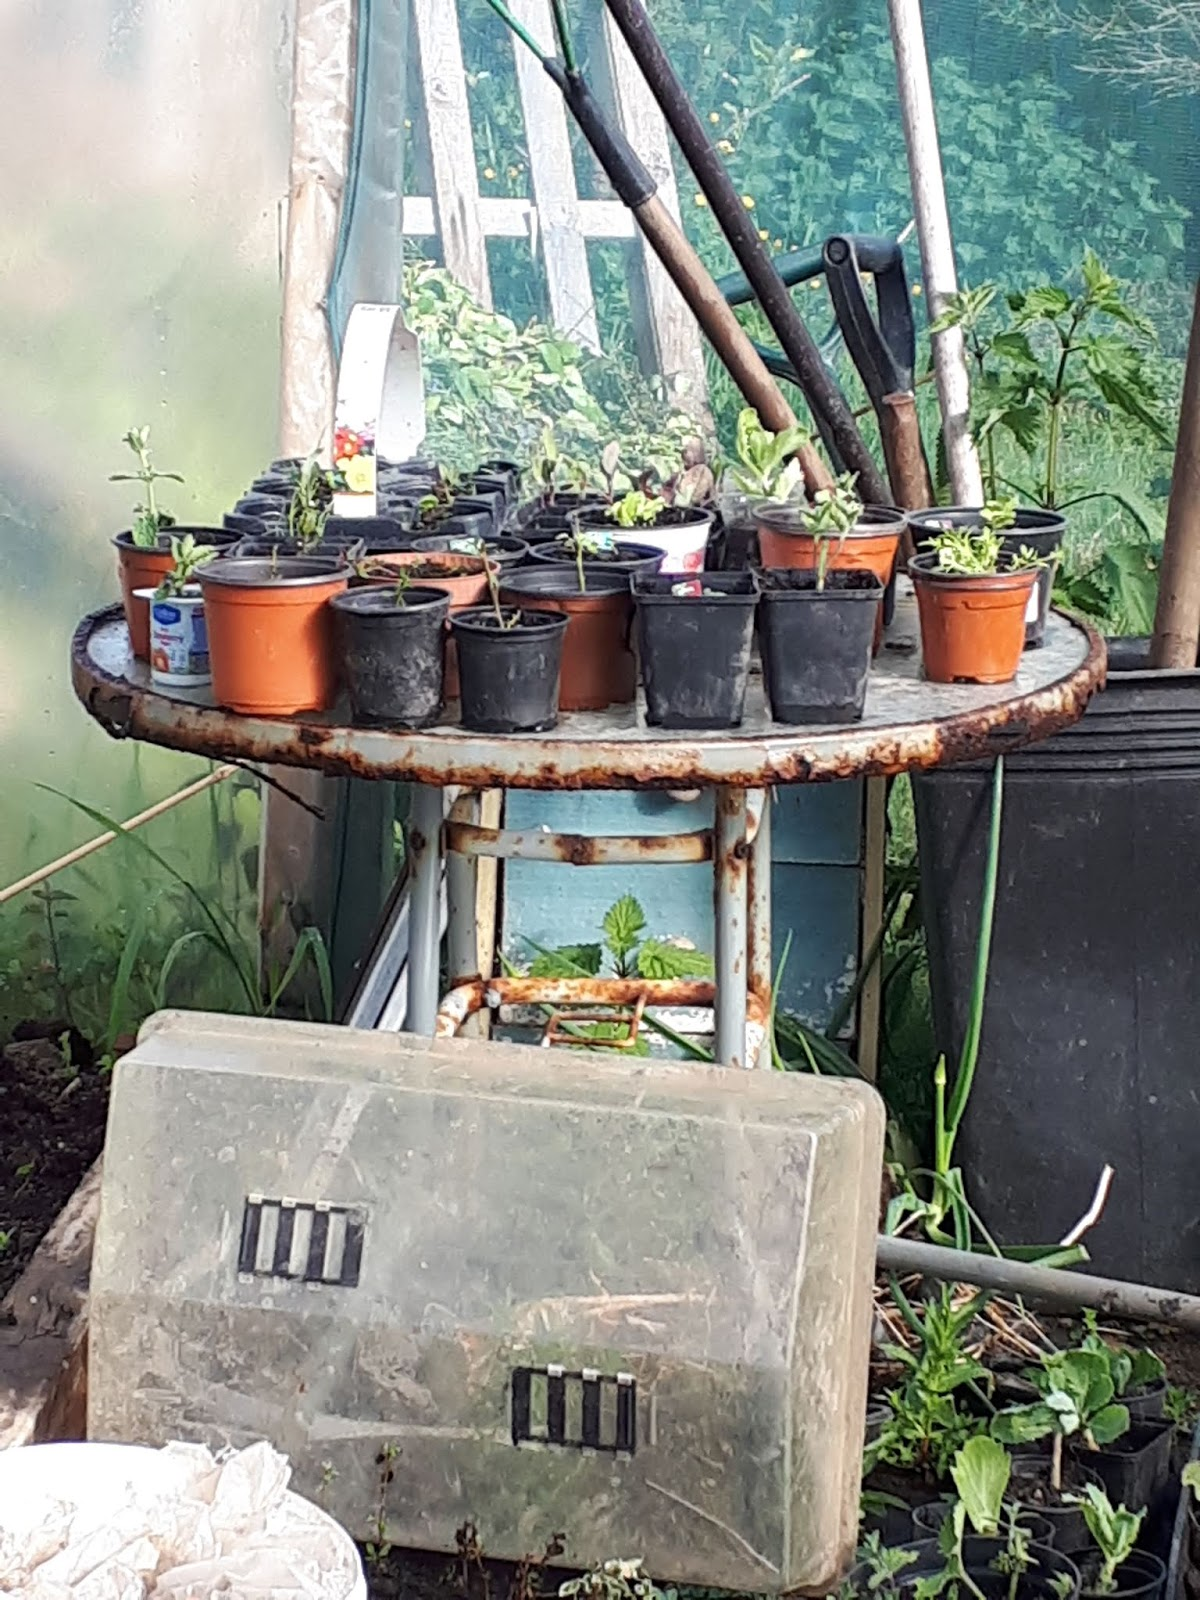 northsider A Recycled Rusty Garden Table And Carrot Wheelbarrow